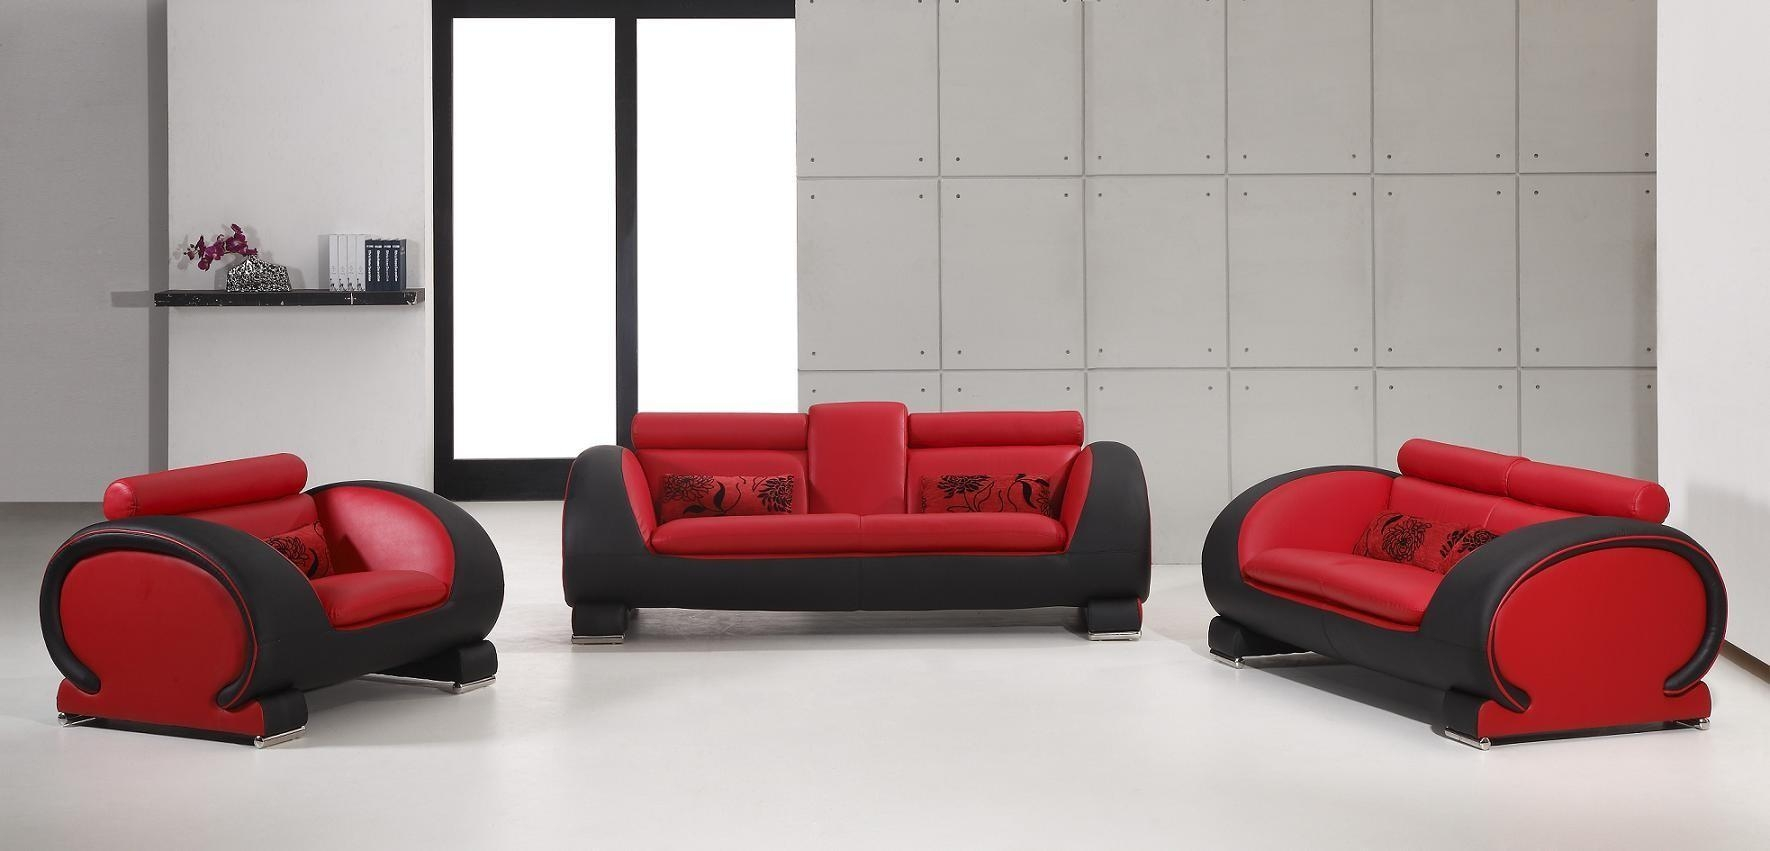 2811 - Red & Black Bonded Leather Sofa Set Nova Interiors in Black And Red Sofas